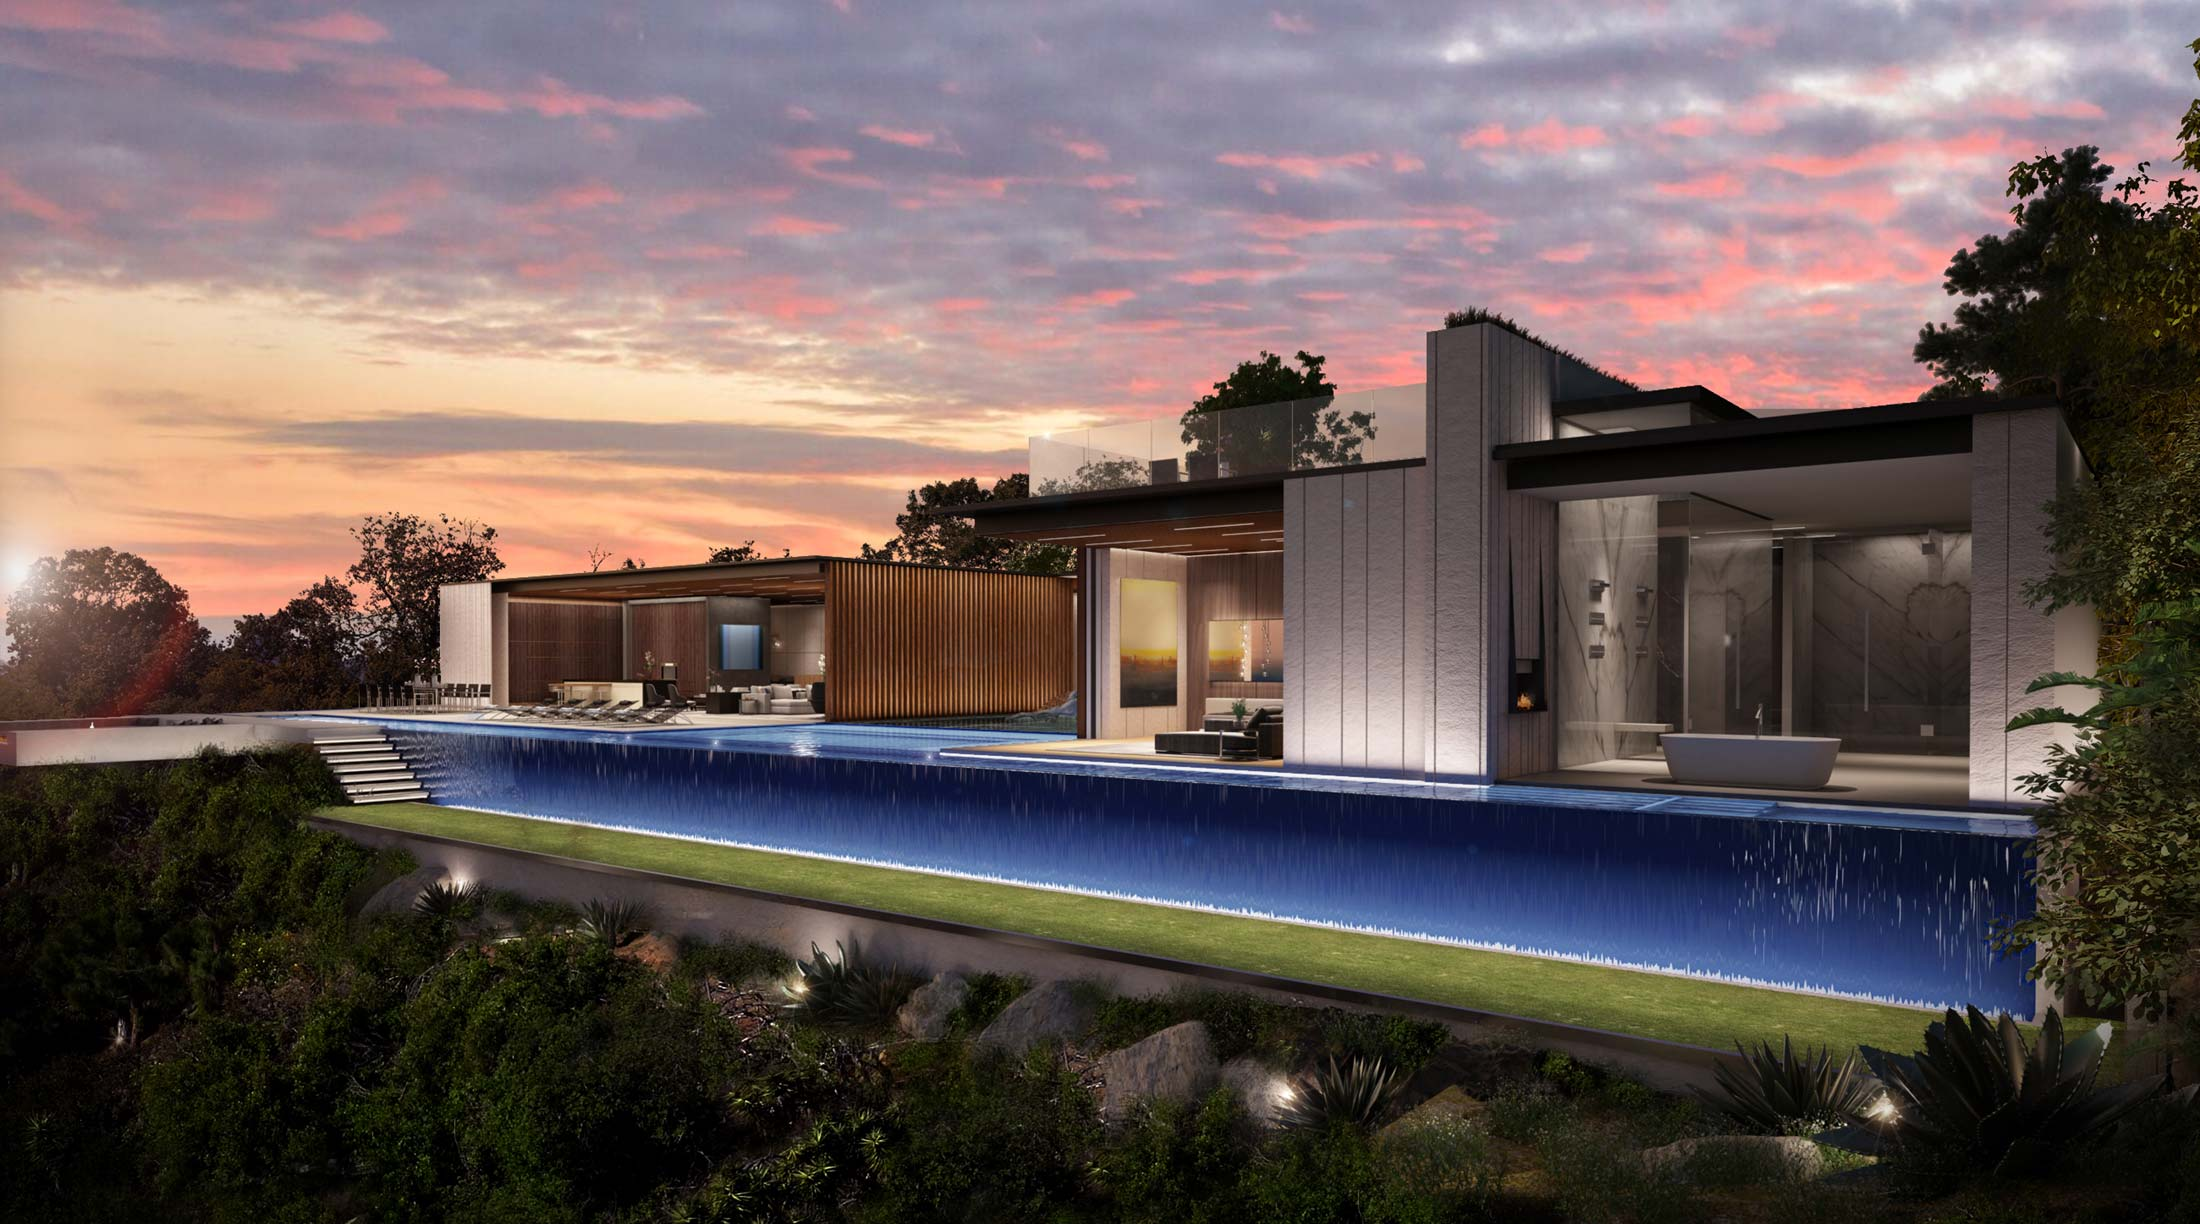 modern-architecture-residential-wood-indoor-outdoor-pool-shubindonaldson-1169hillcrest-2